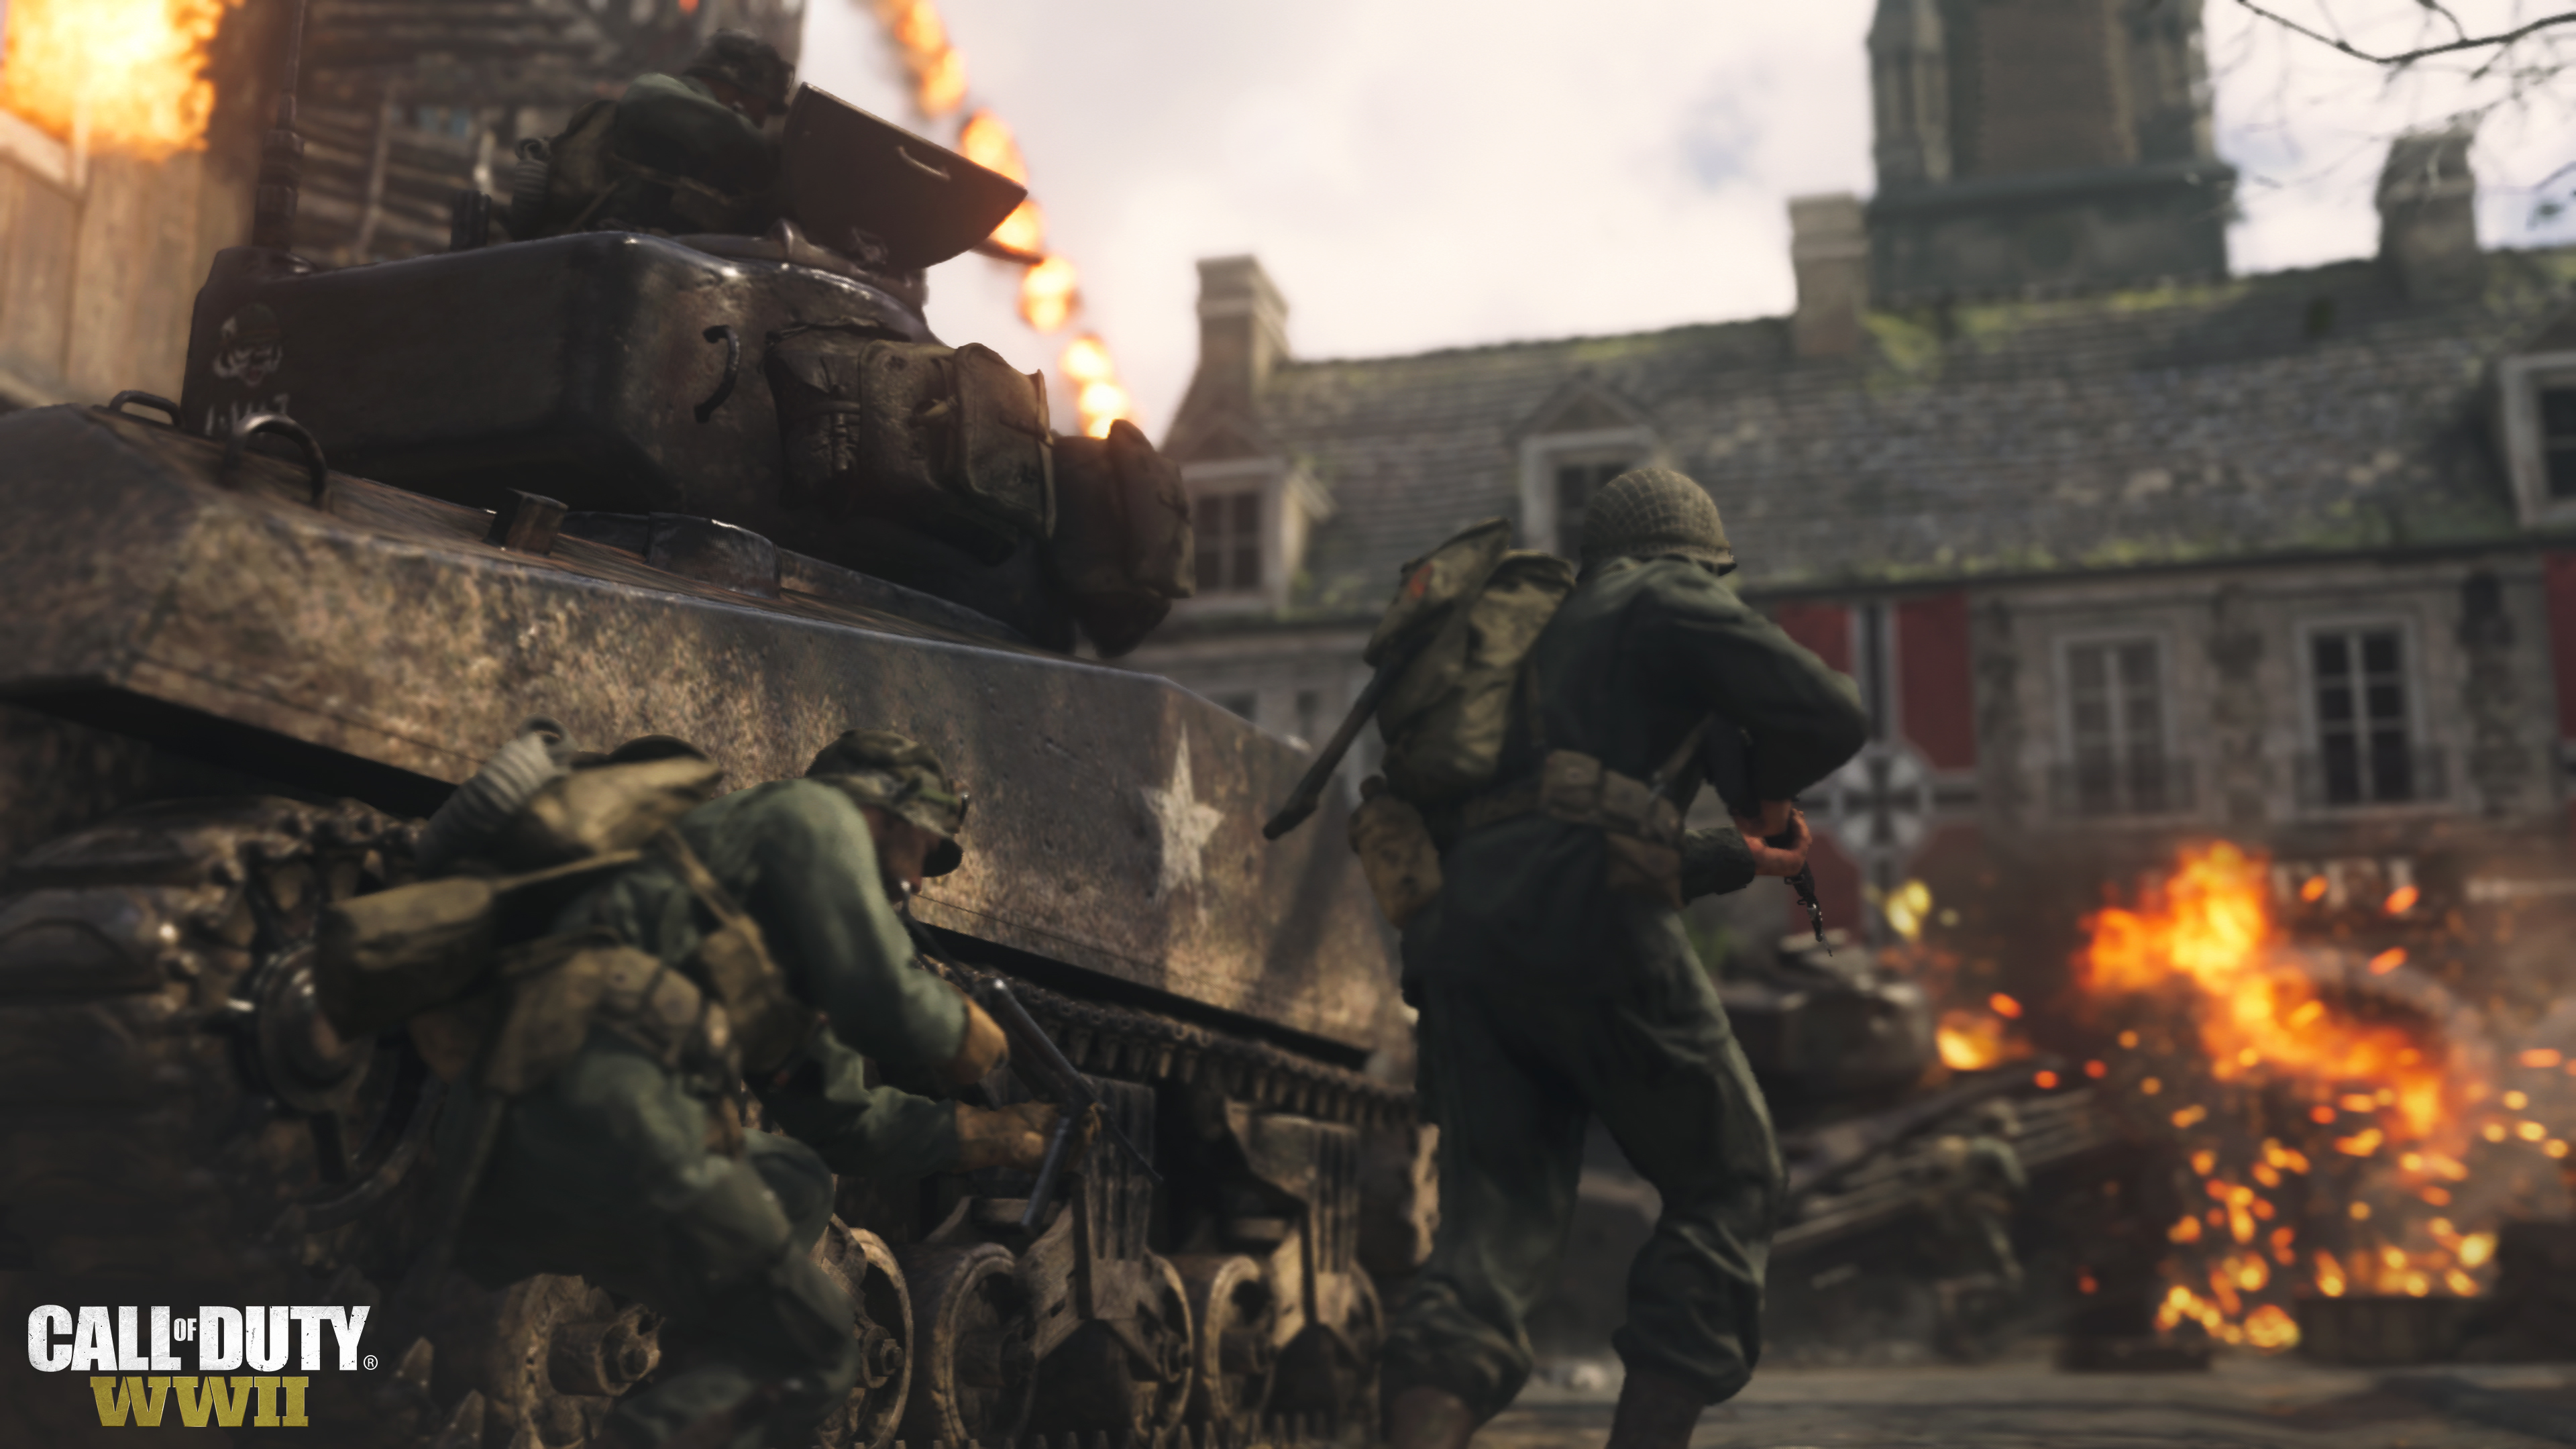 Call of Duty: World War II multiplayer lets you fight as anyone, history be damned